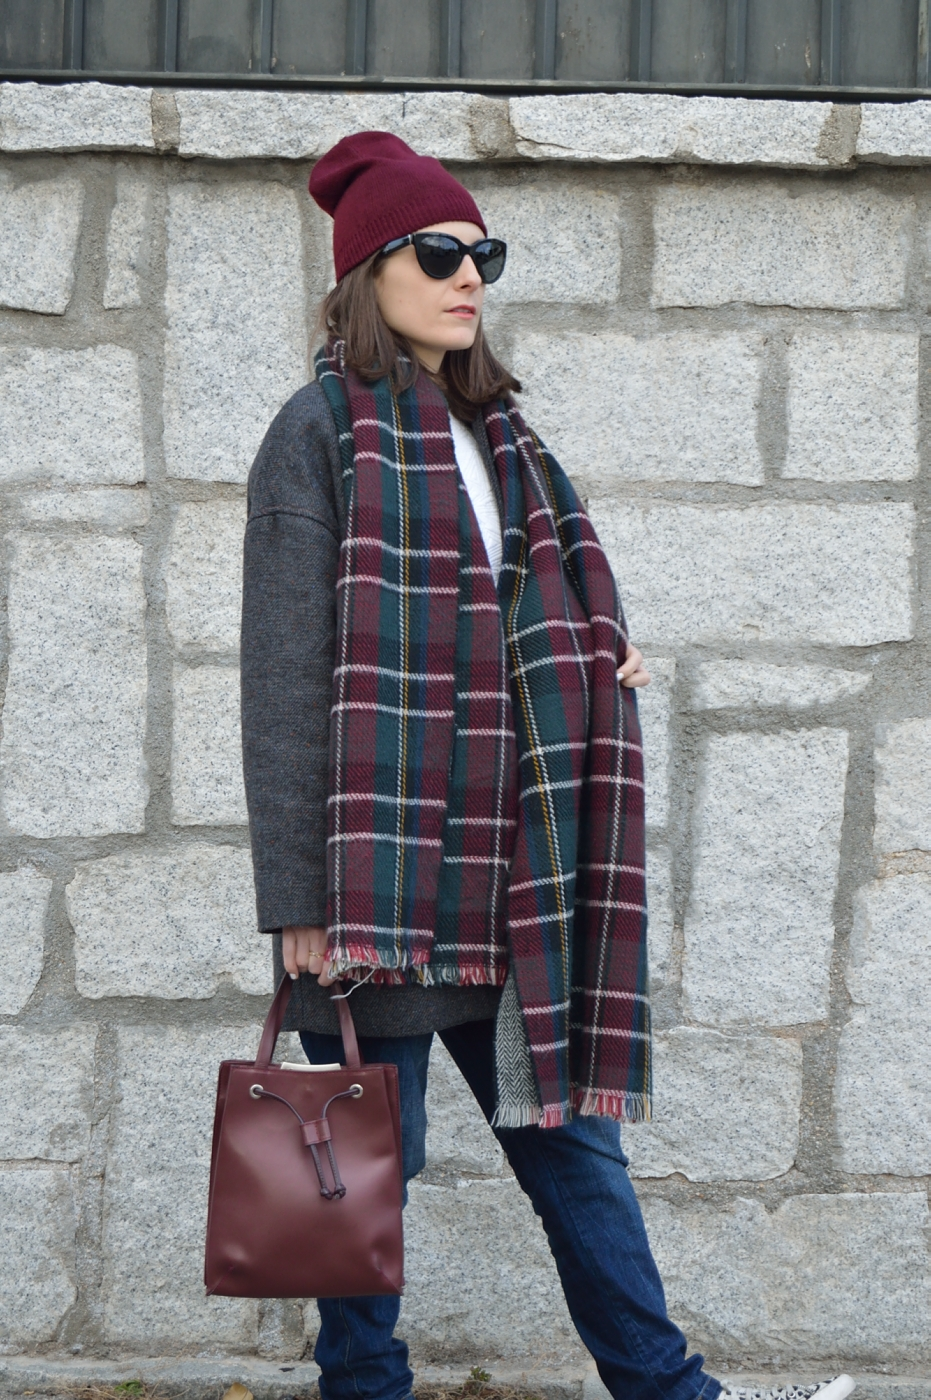 lara-vazquez-mad-lula-style-look-ootd-fashion-winter-time